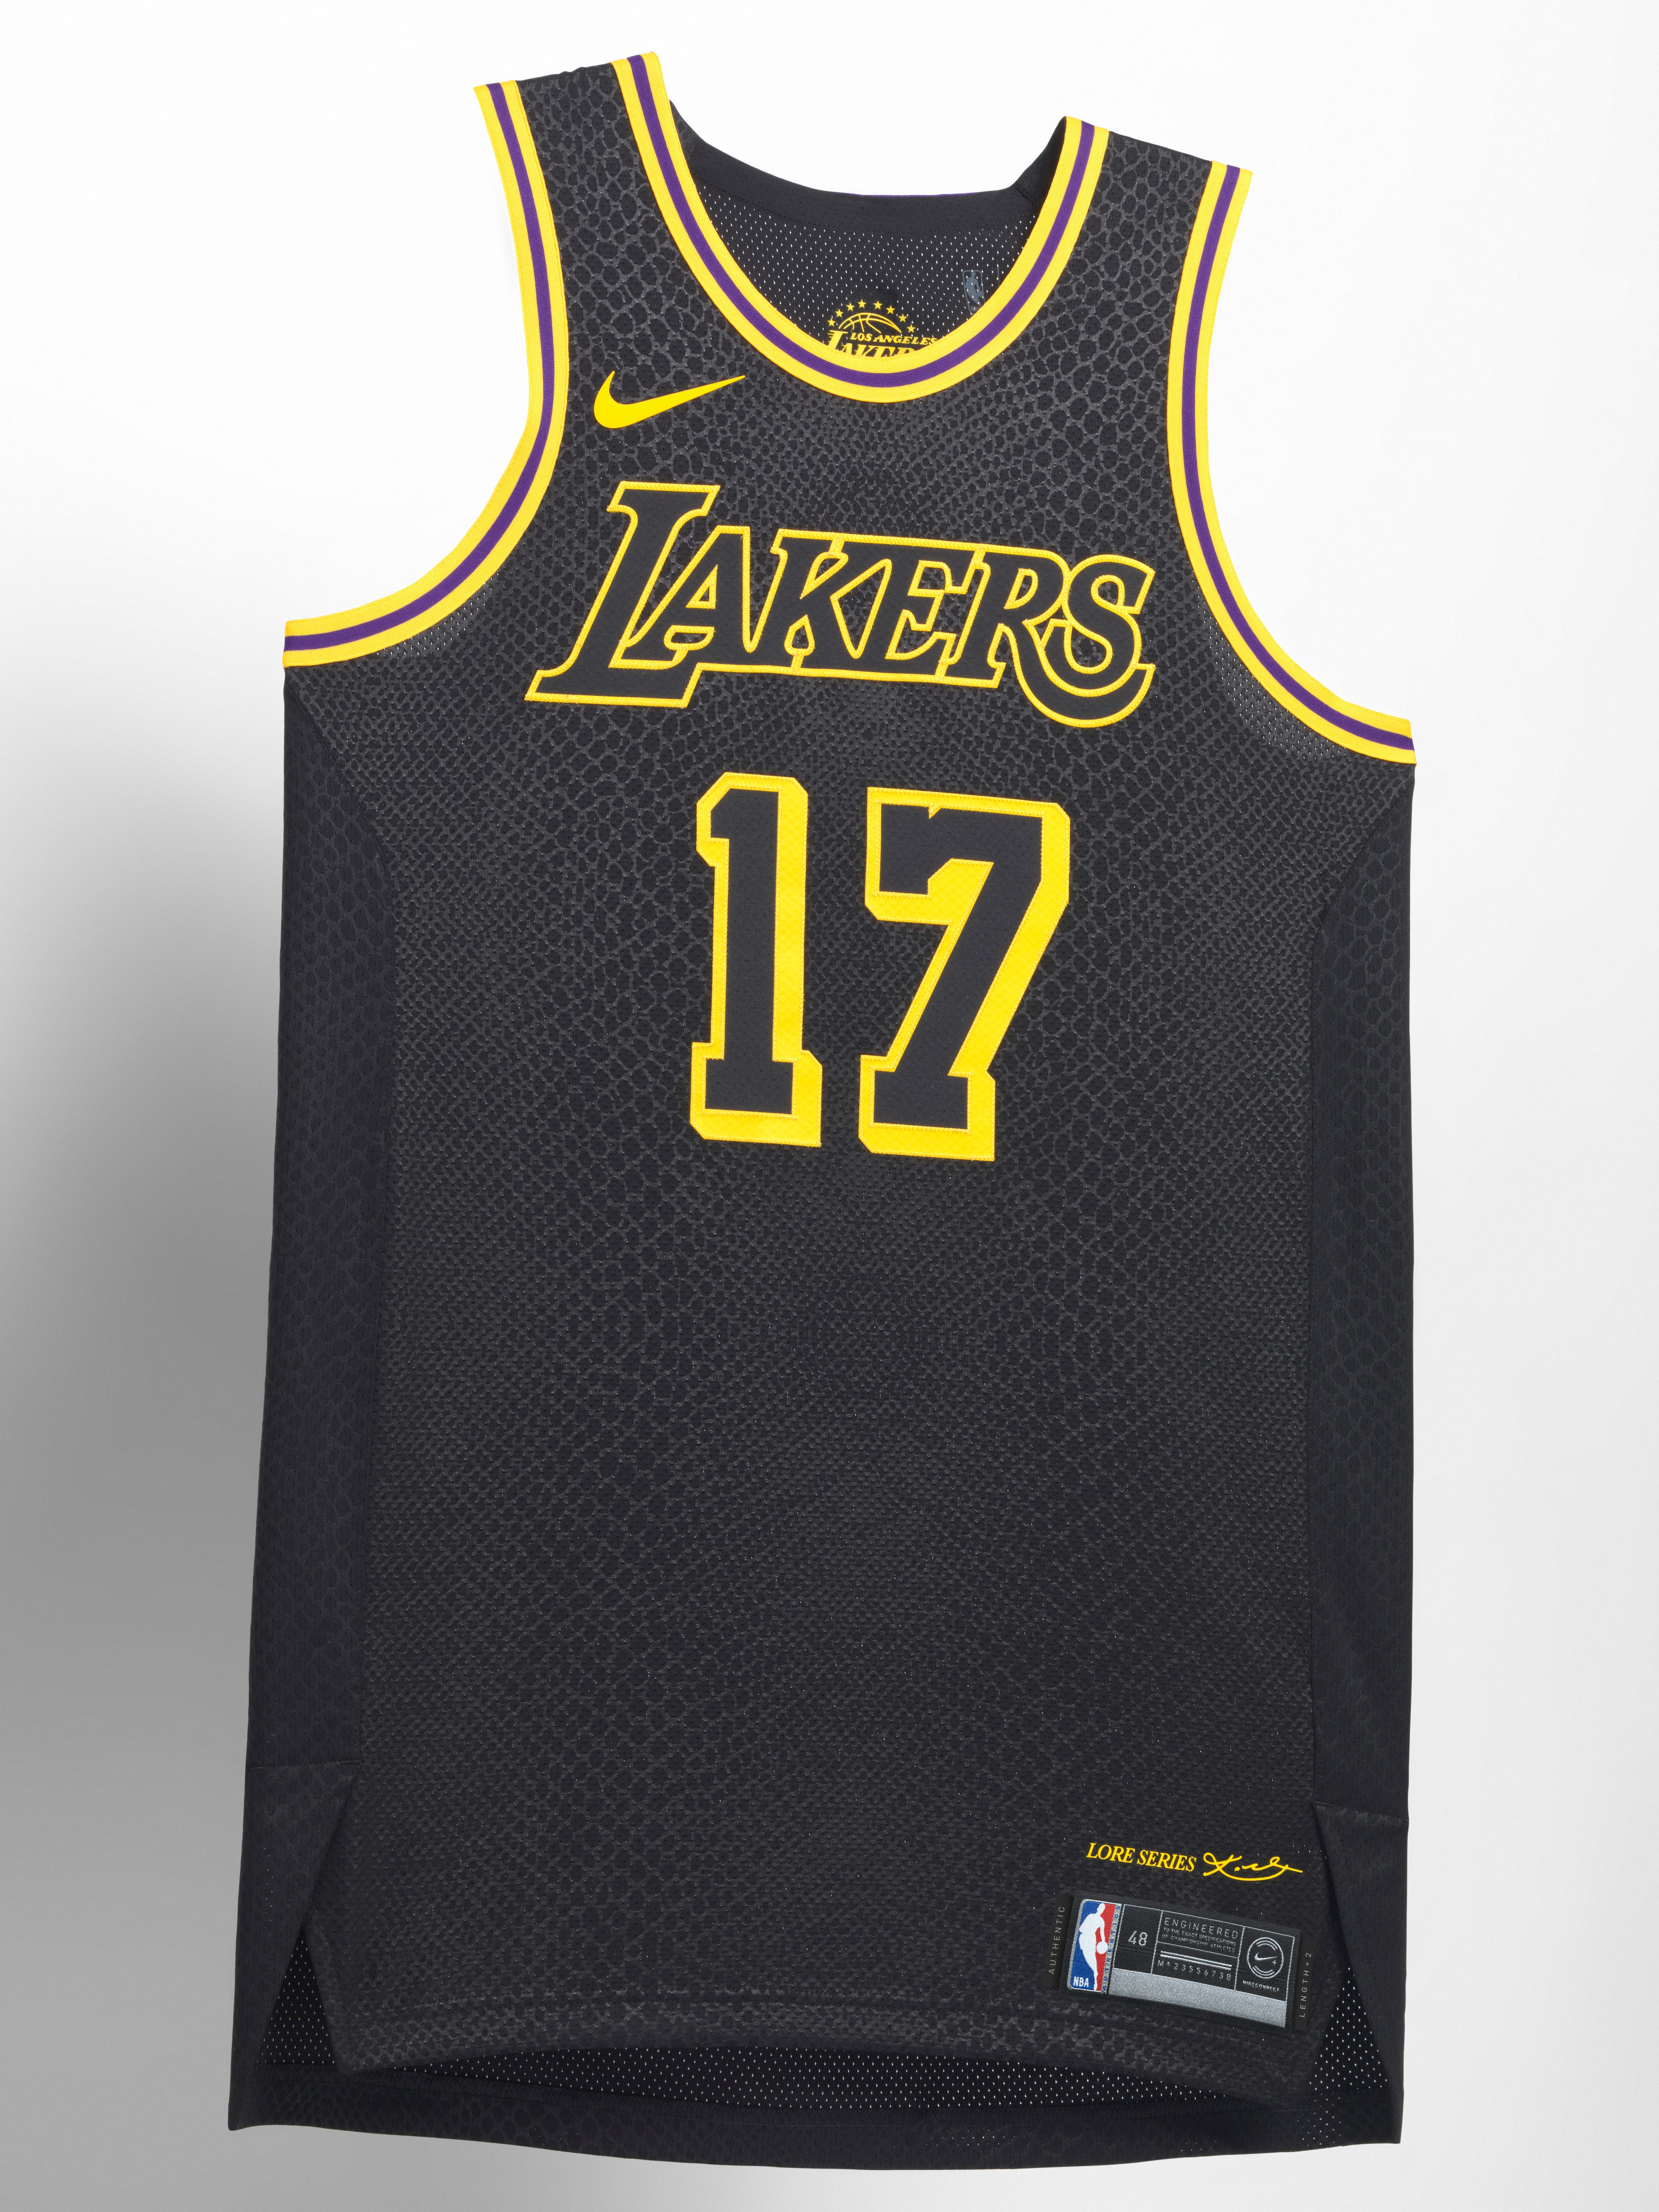 Nike NBA City Edition uniforms: The story behind the design process